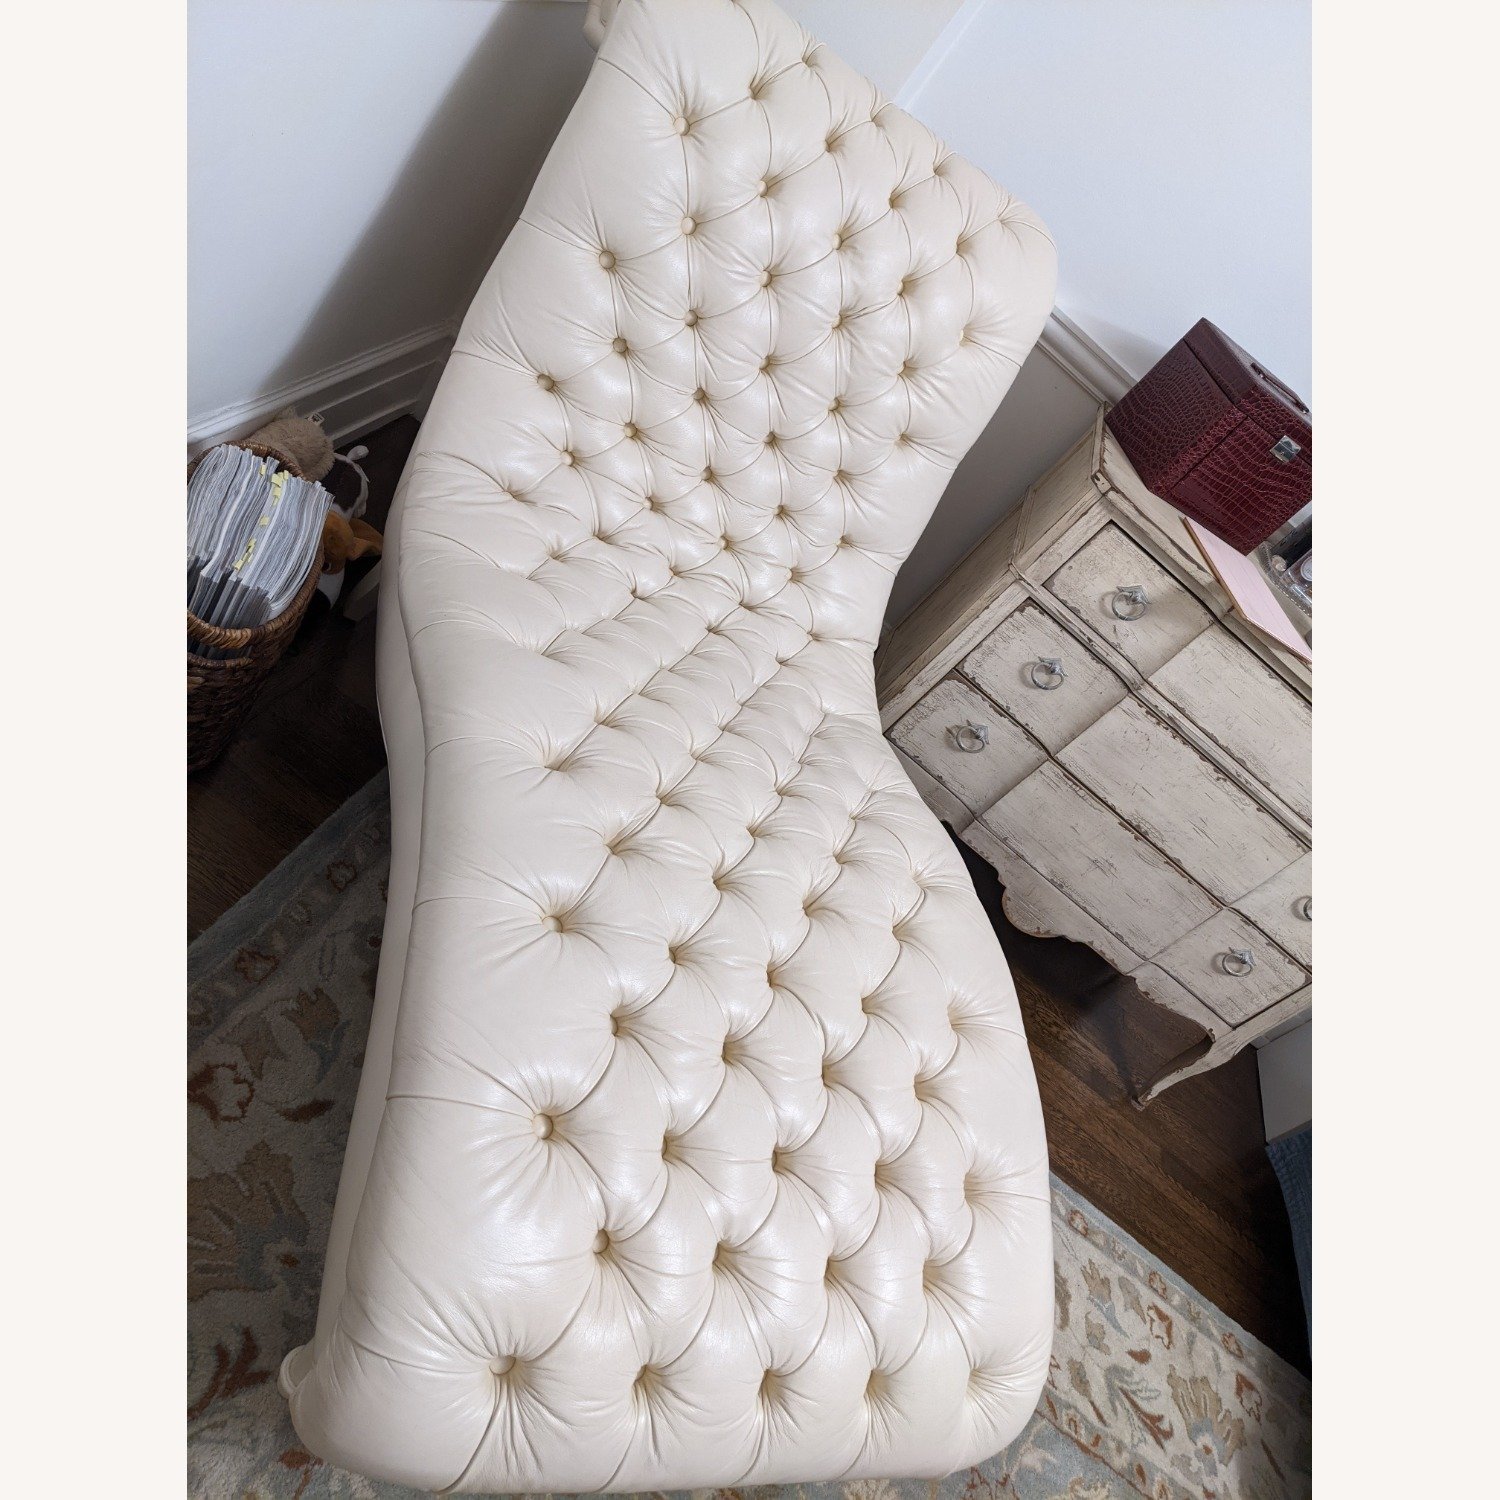 Ethan Allen Leather Chaise Long - image-10